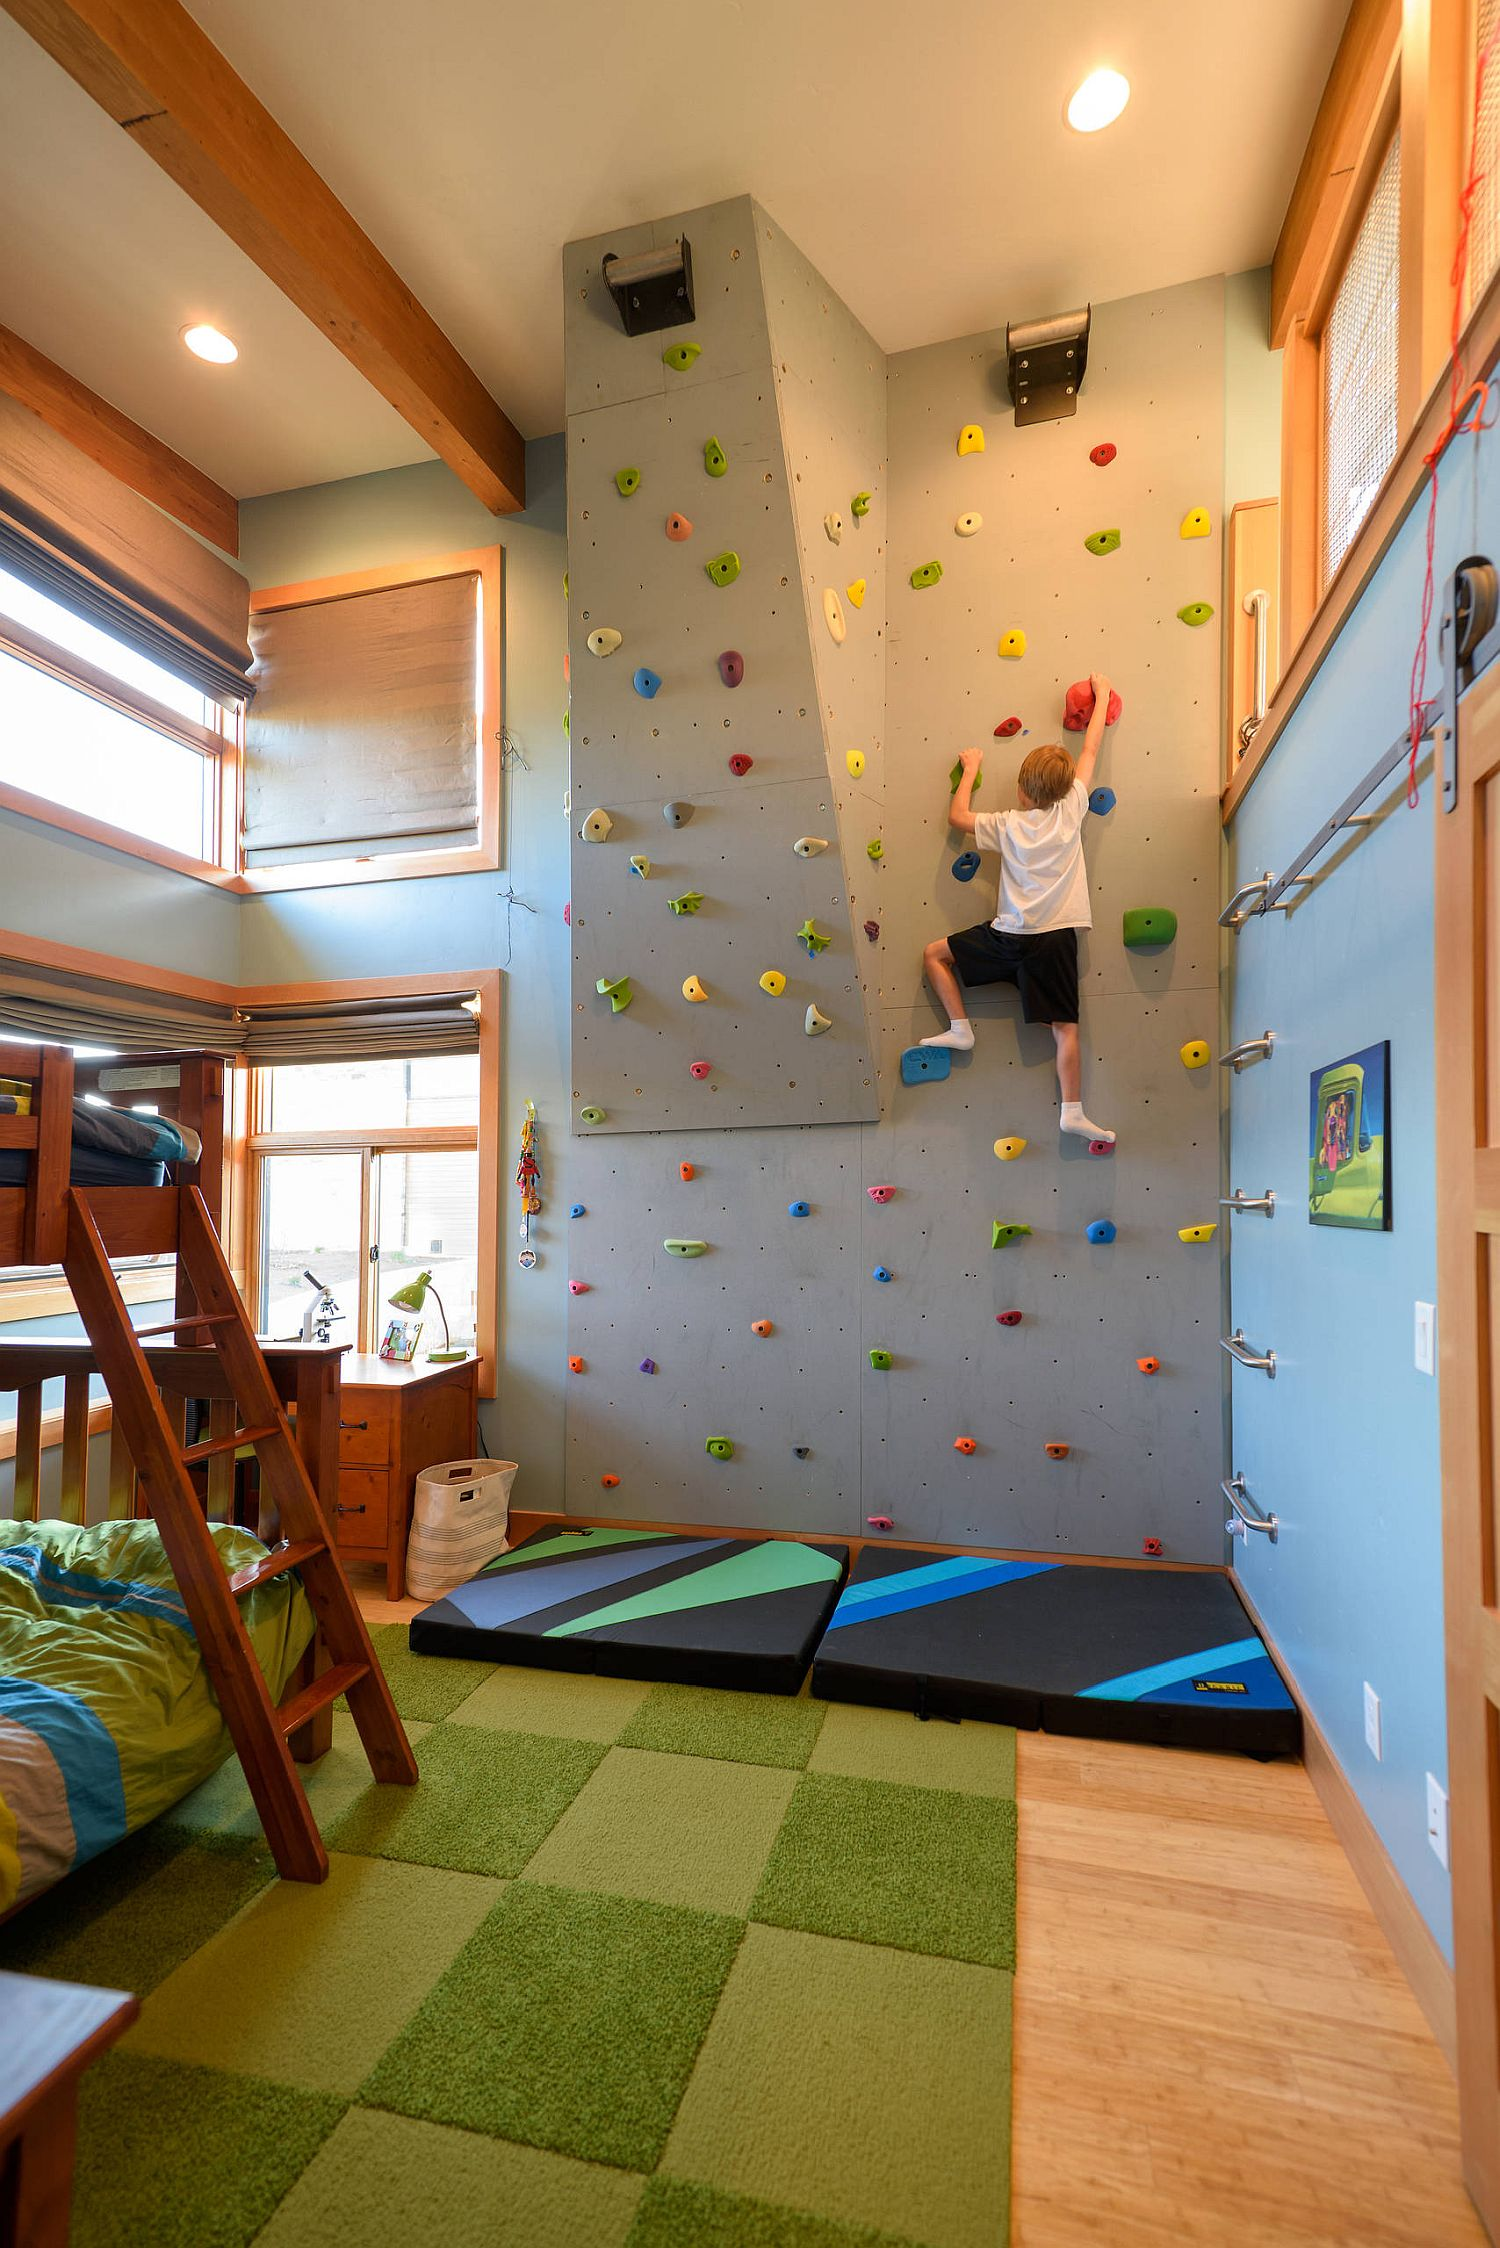 Creative Climbing Walls for the Kids? Rooms: A More Active Home Interior